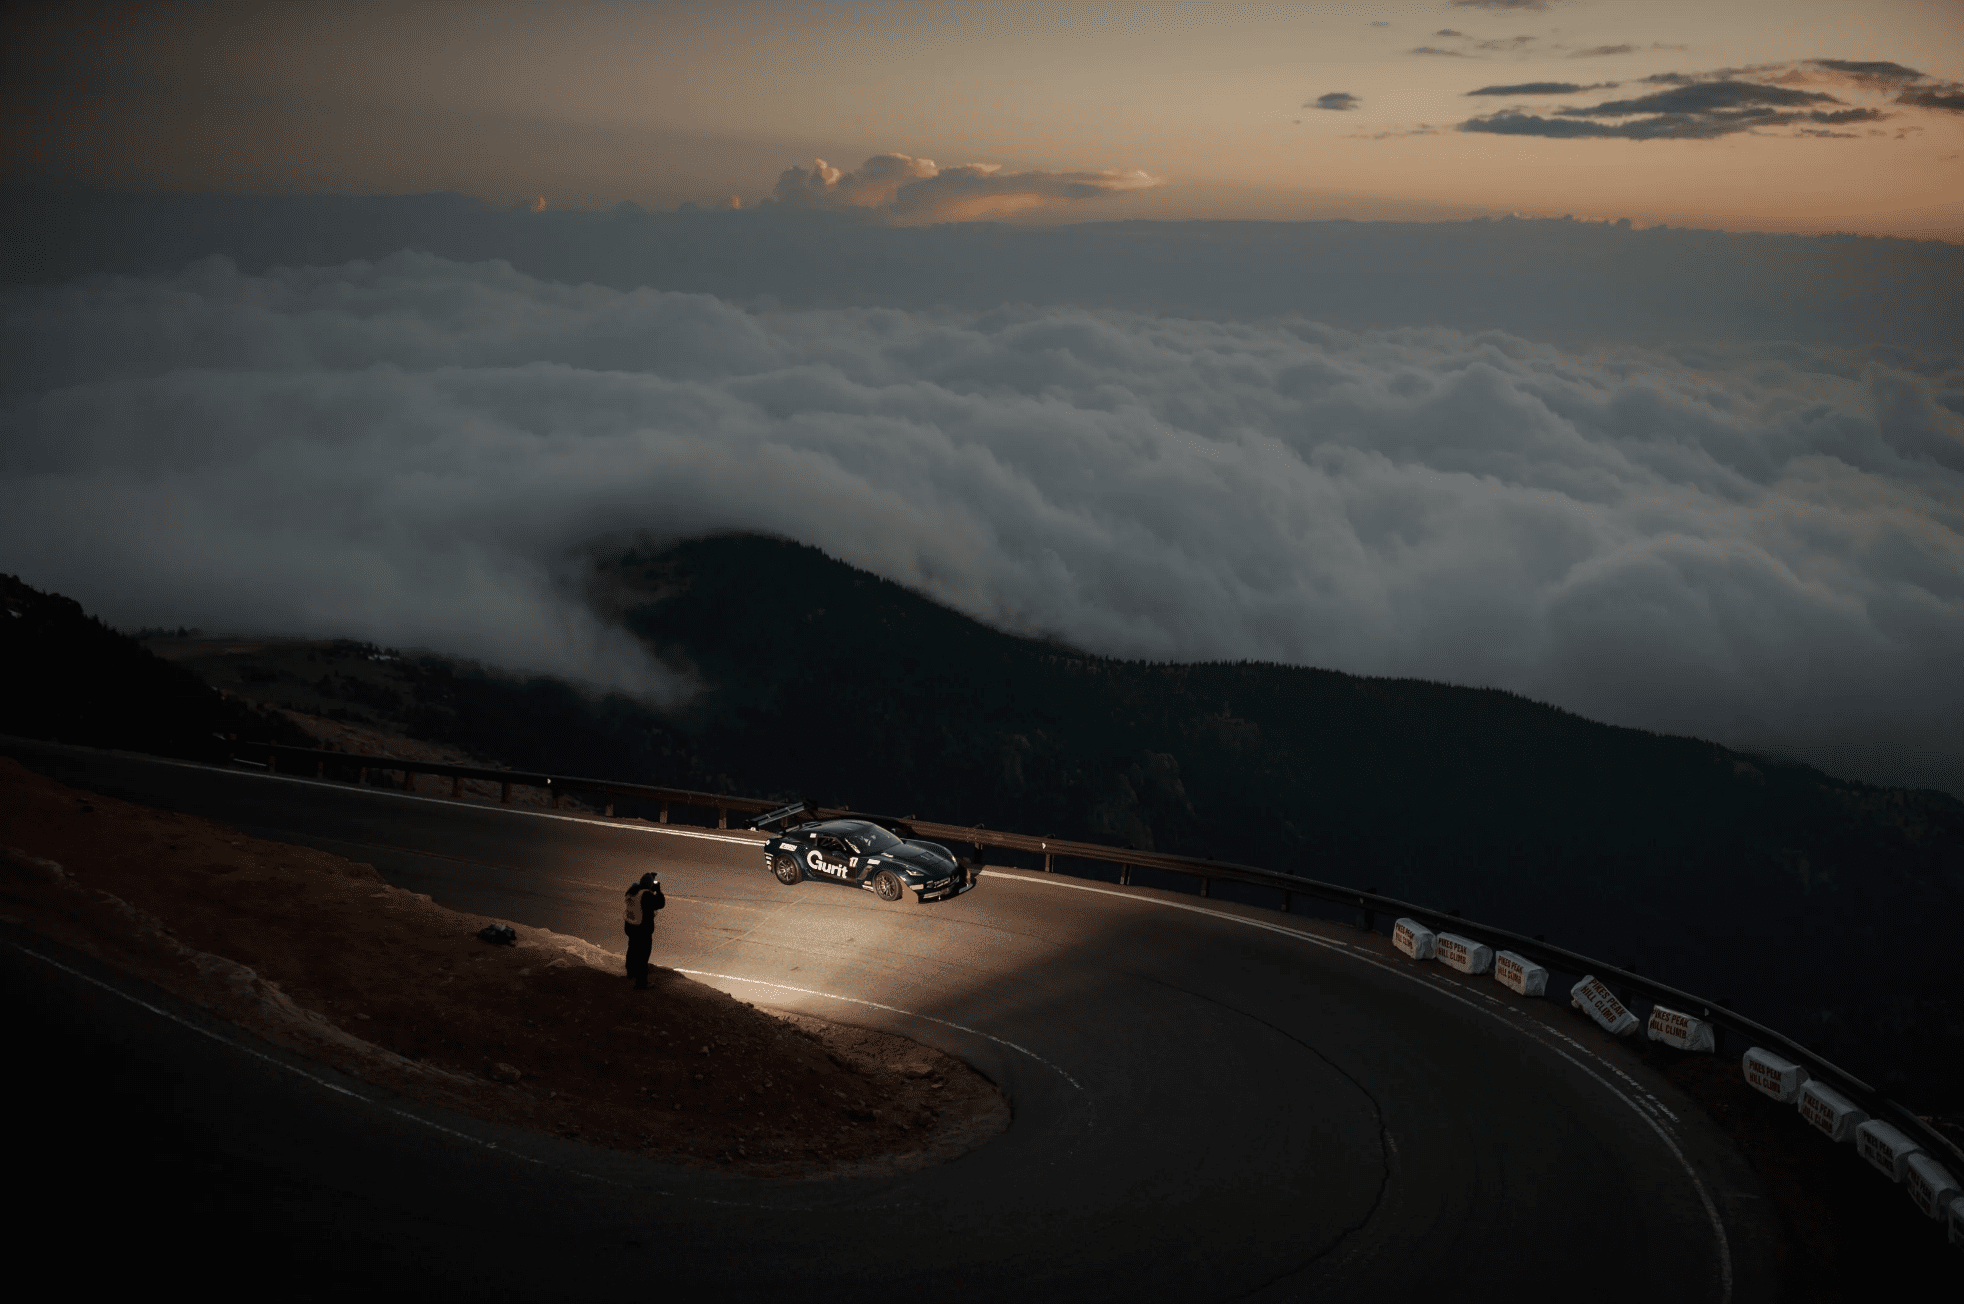 PIKES PEAK INTERNATIONAL HILL CLIMB: THE RACE TO THE CLOUDS!